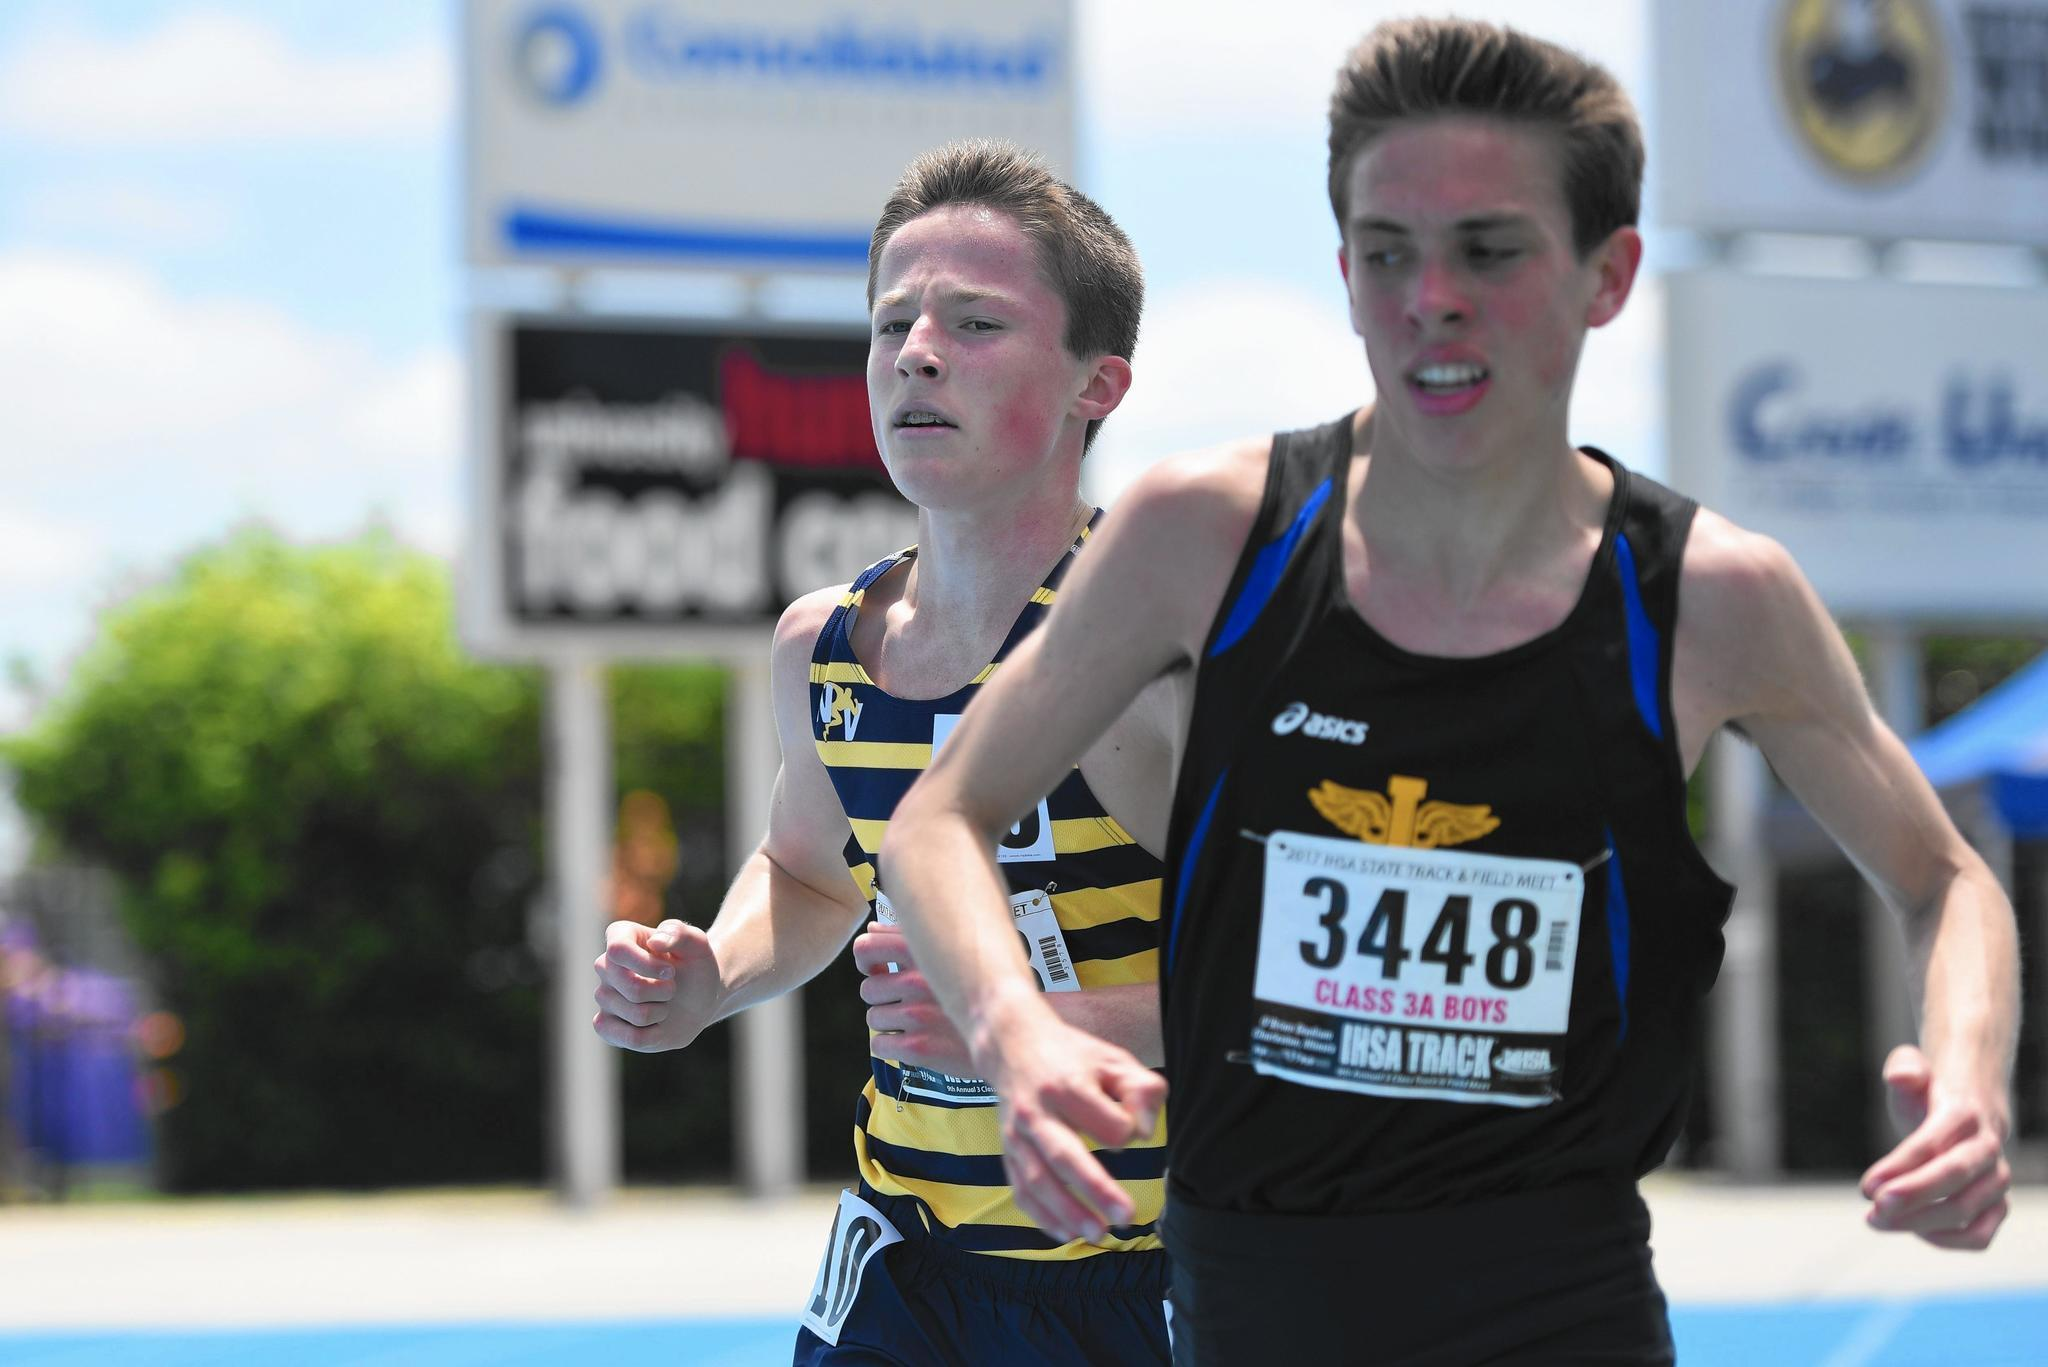 Ct-nvs-boys-track-state-st-0528-20170527